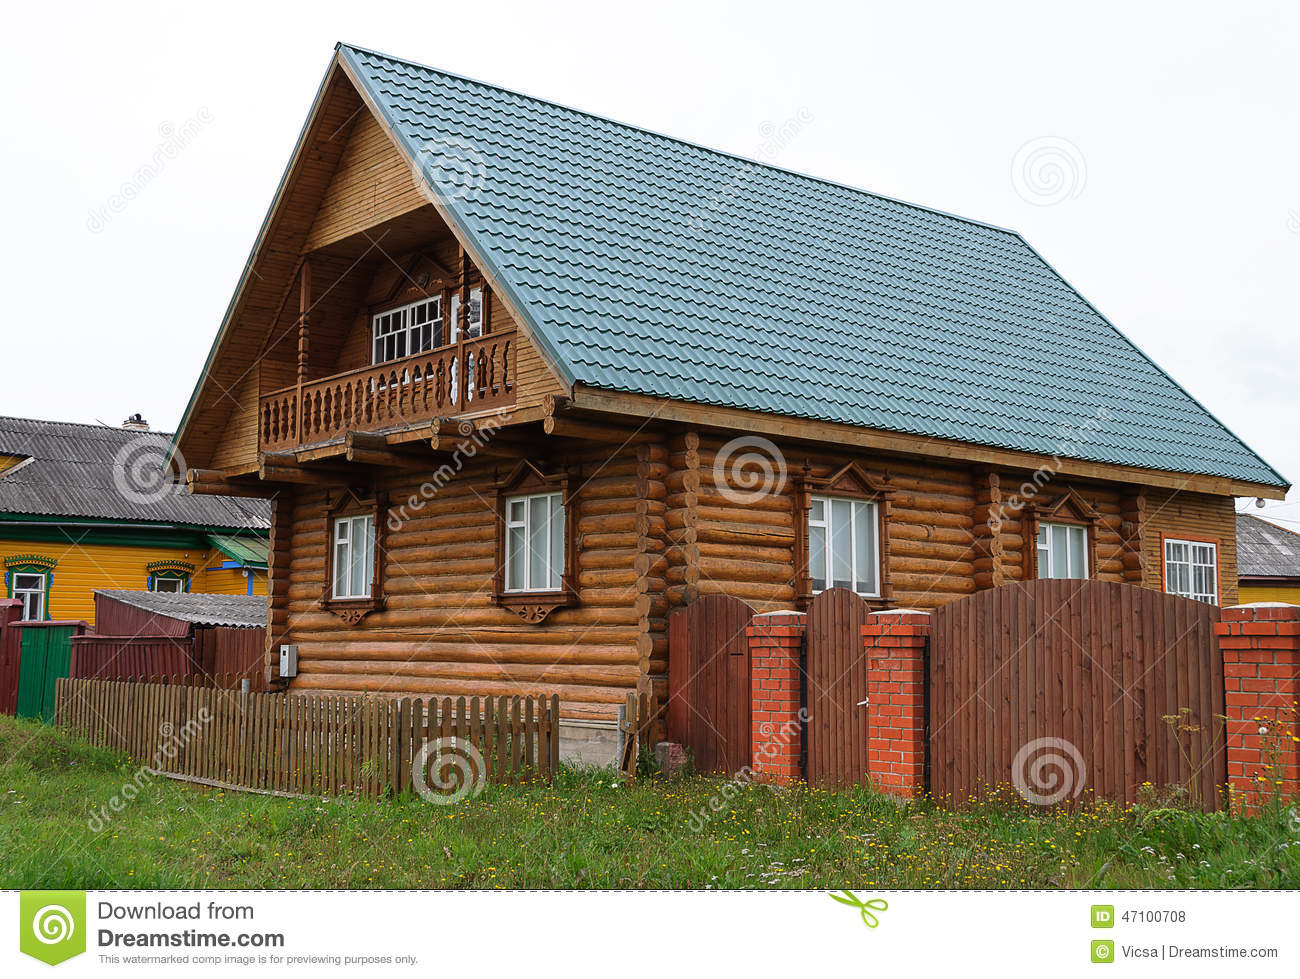 Wonderful image of Beautiful New Log House Stock Photo Image: 47100708 with #A0602B color and 1300x979 pixels